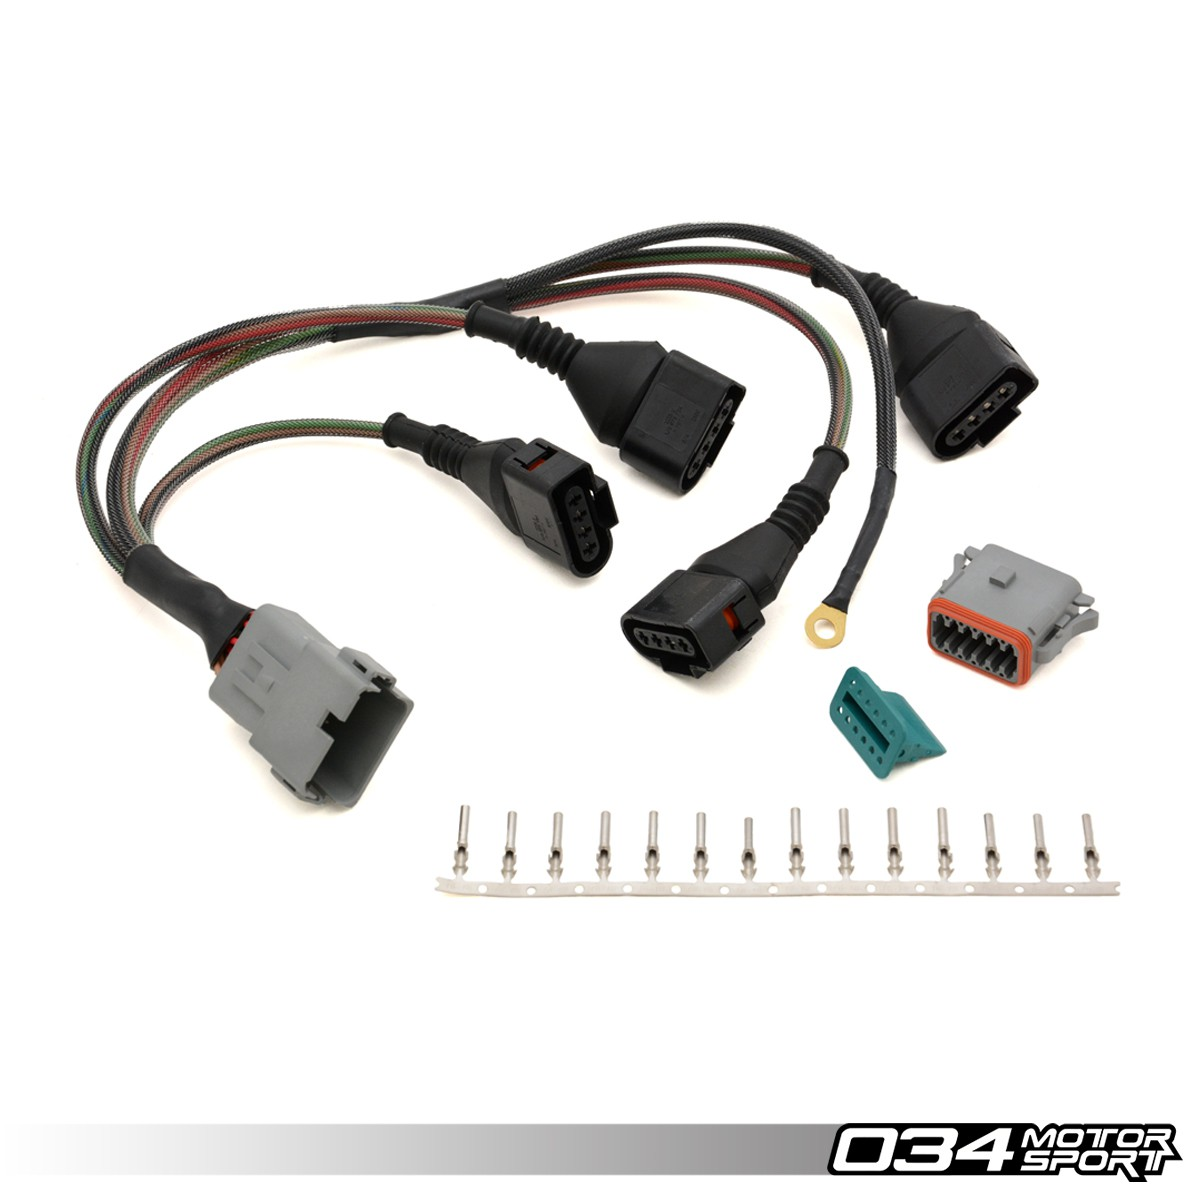 repair update harness audi volkswagen 18t with 4 wire coils 034motorsport 034 701 0004 2 repair update harness, audi volkswagen 1 8t with 4 wire coils 4 wire harness at eliteediting.co